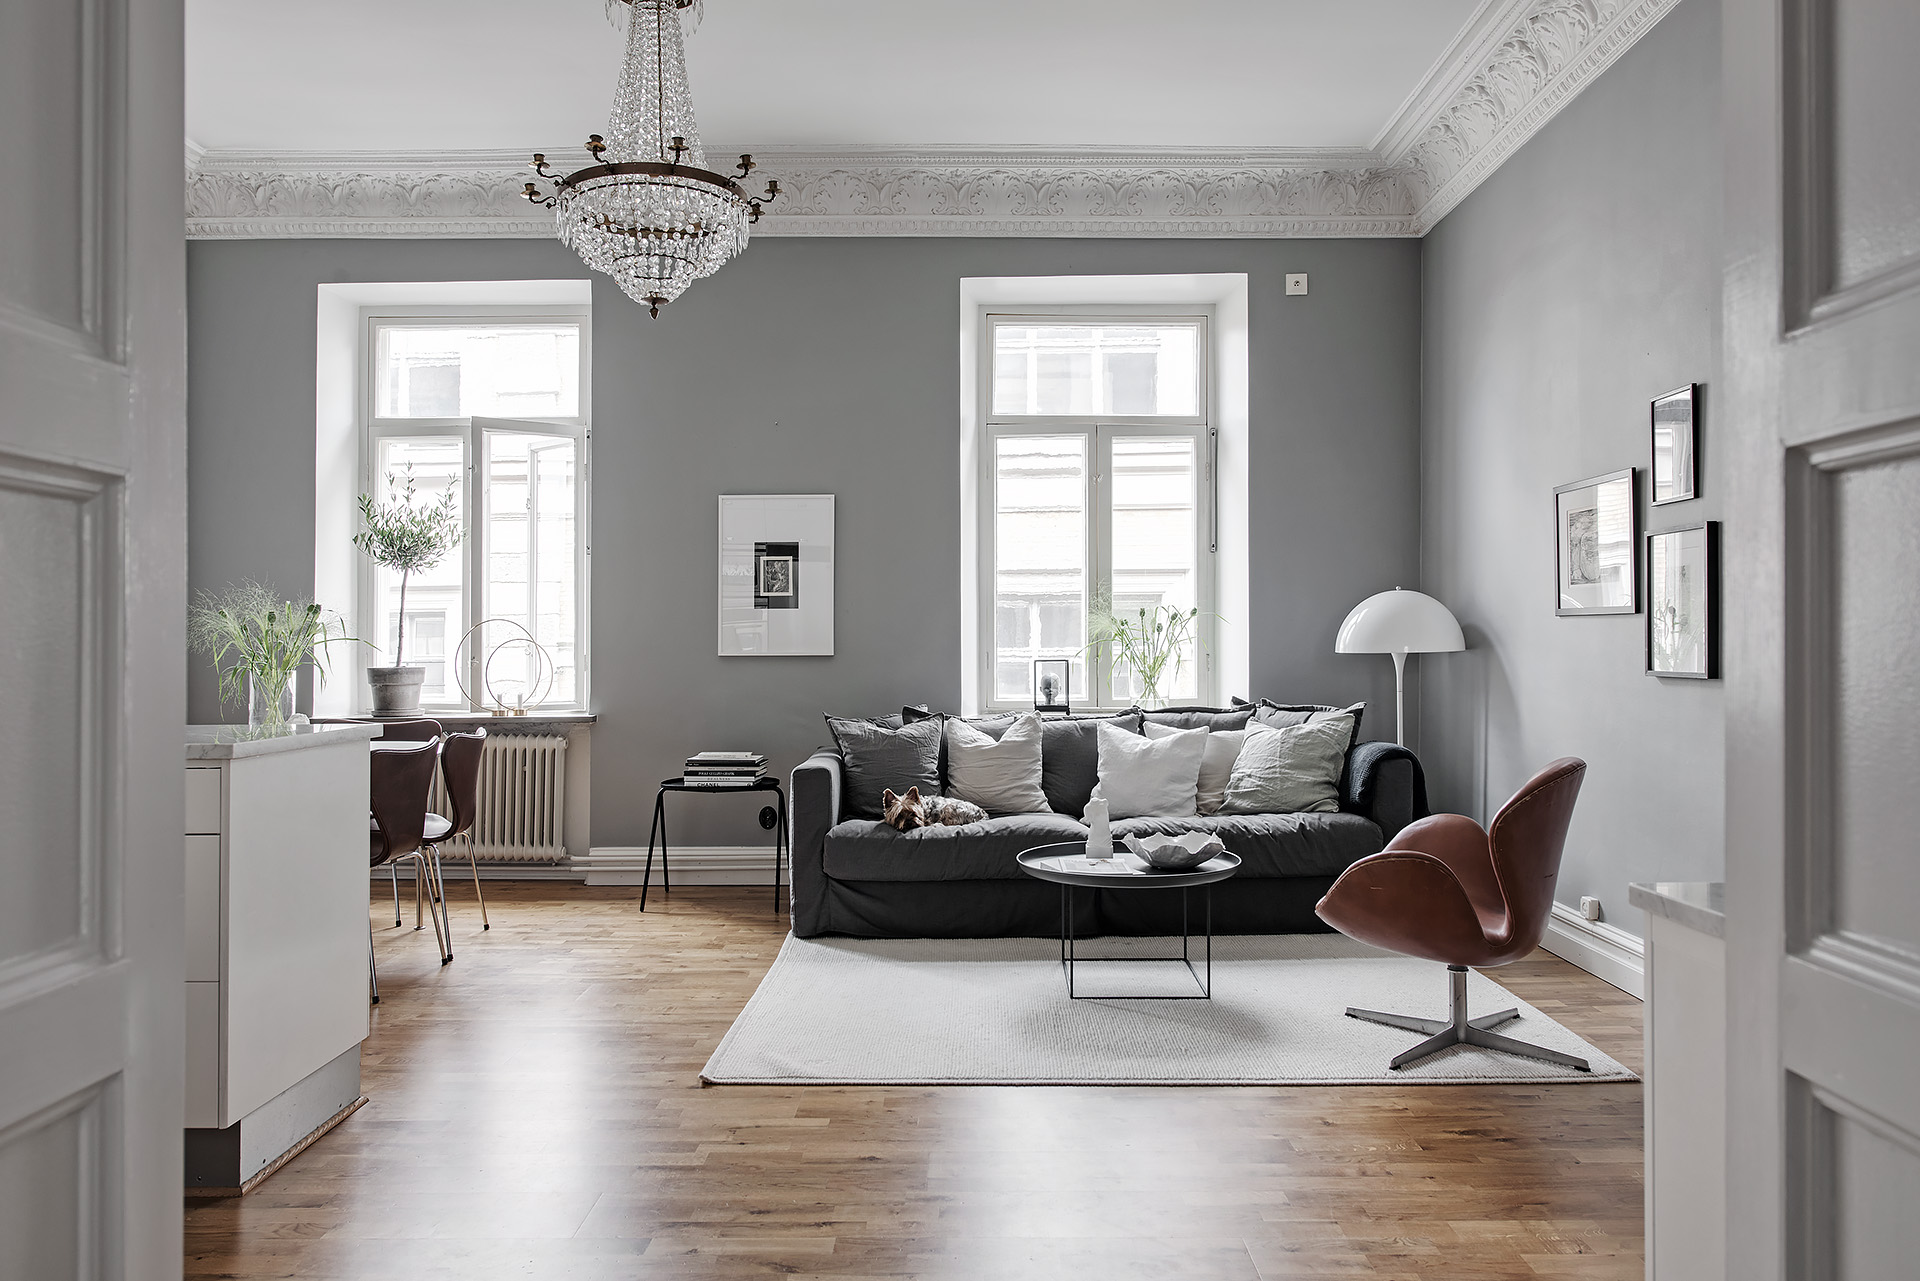 Beautiful and cozy home in grey coco lapine designcoco for Idee per arredare il soggiorno